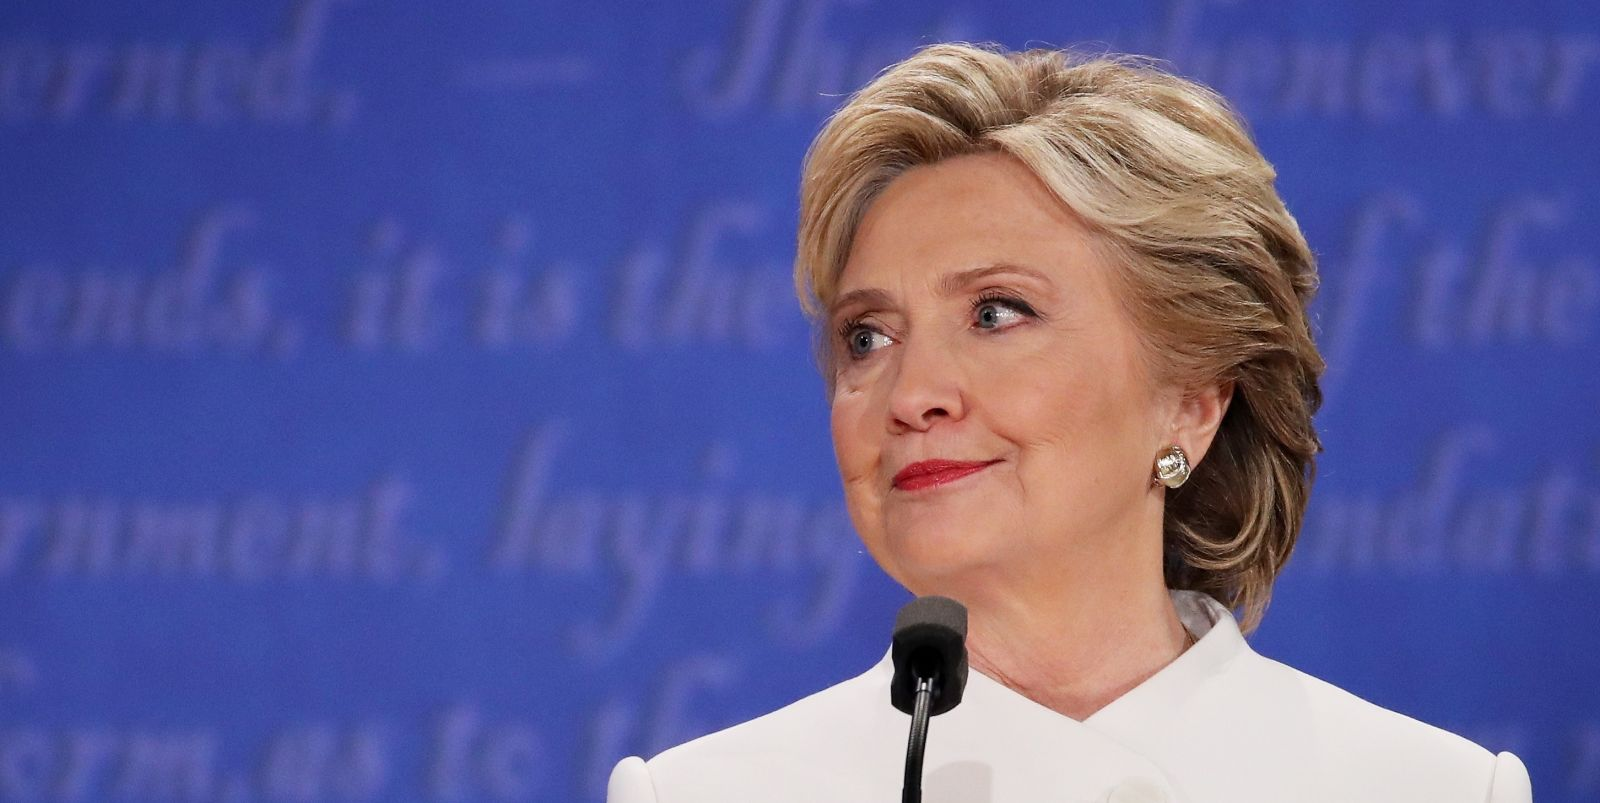 Over Two Million People Have Signed a Petition Asking the Electoral College to Vote for Hillary Clinton forecasting